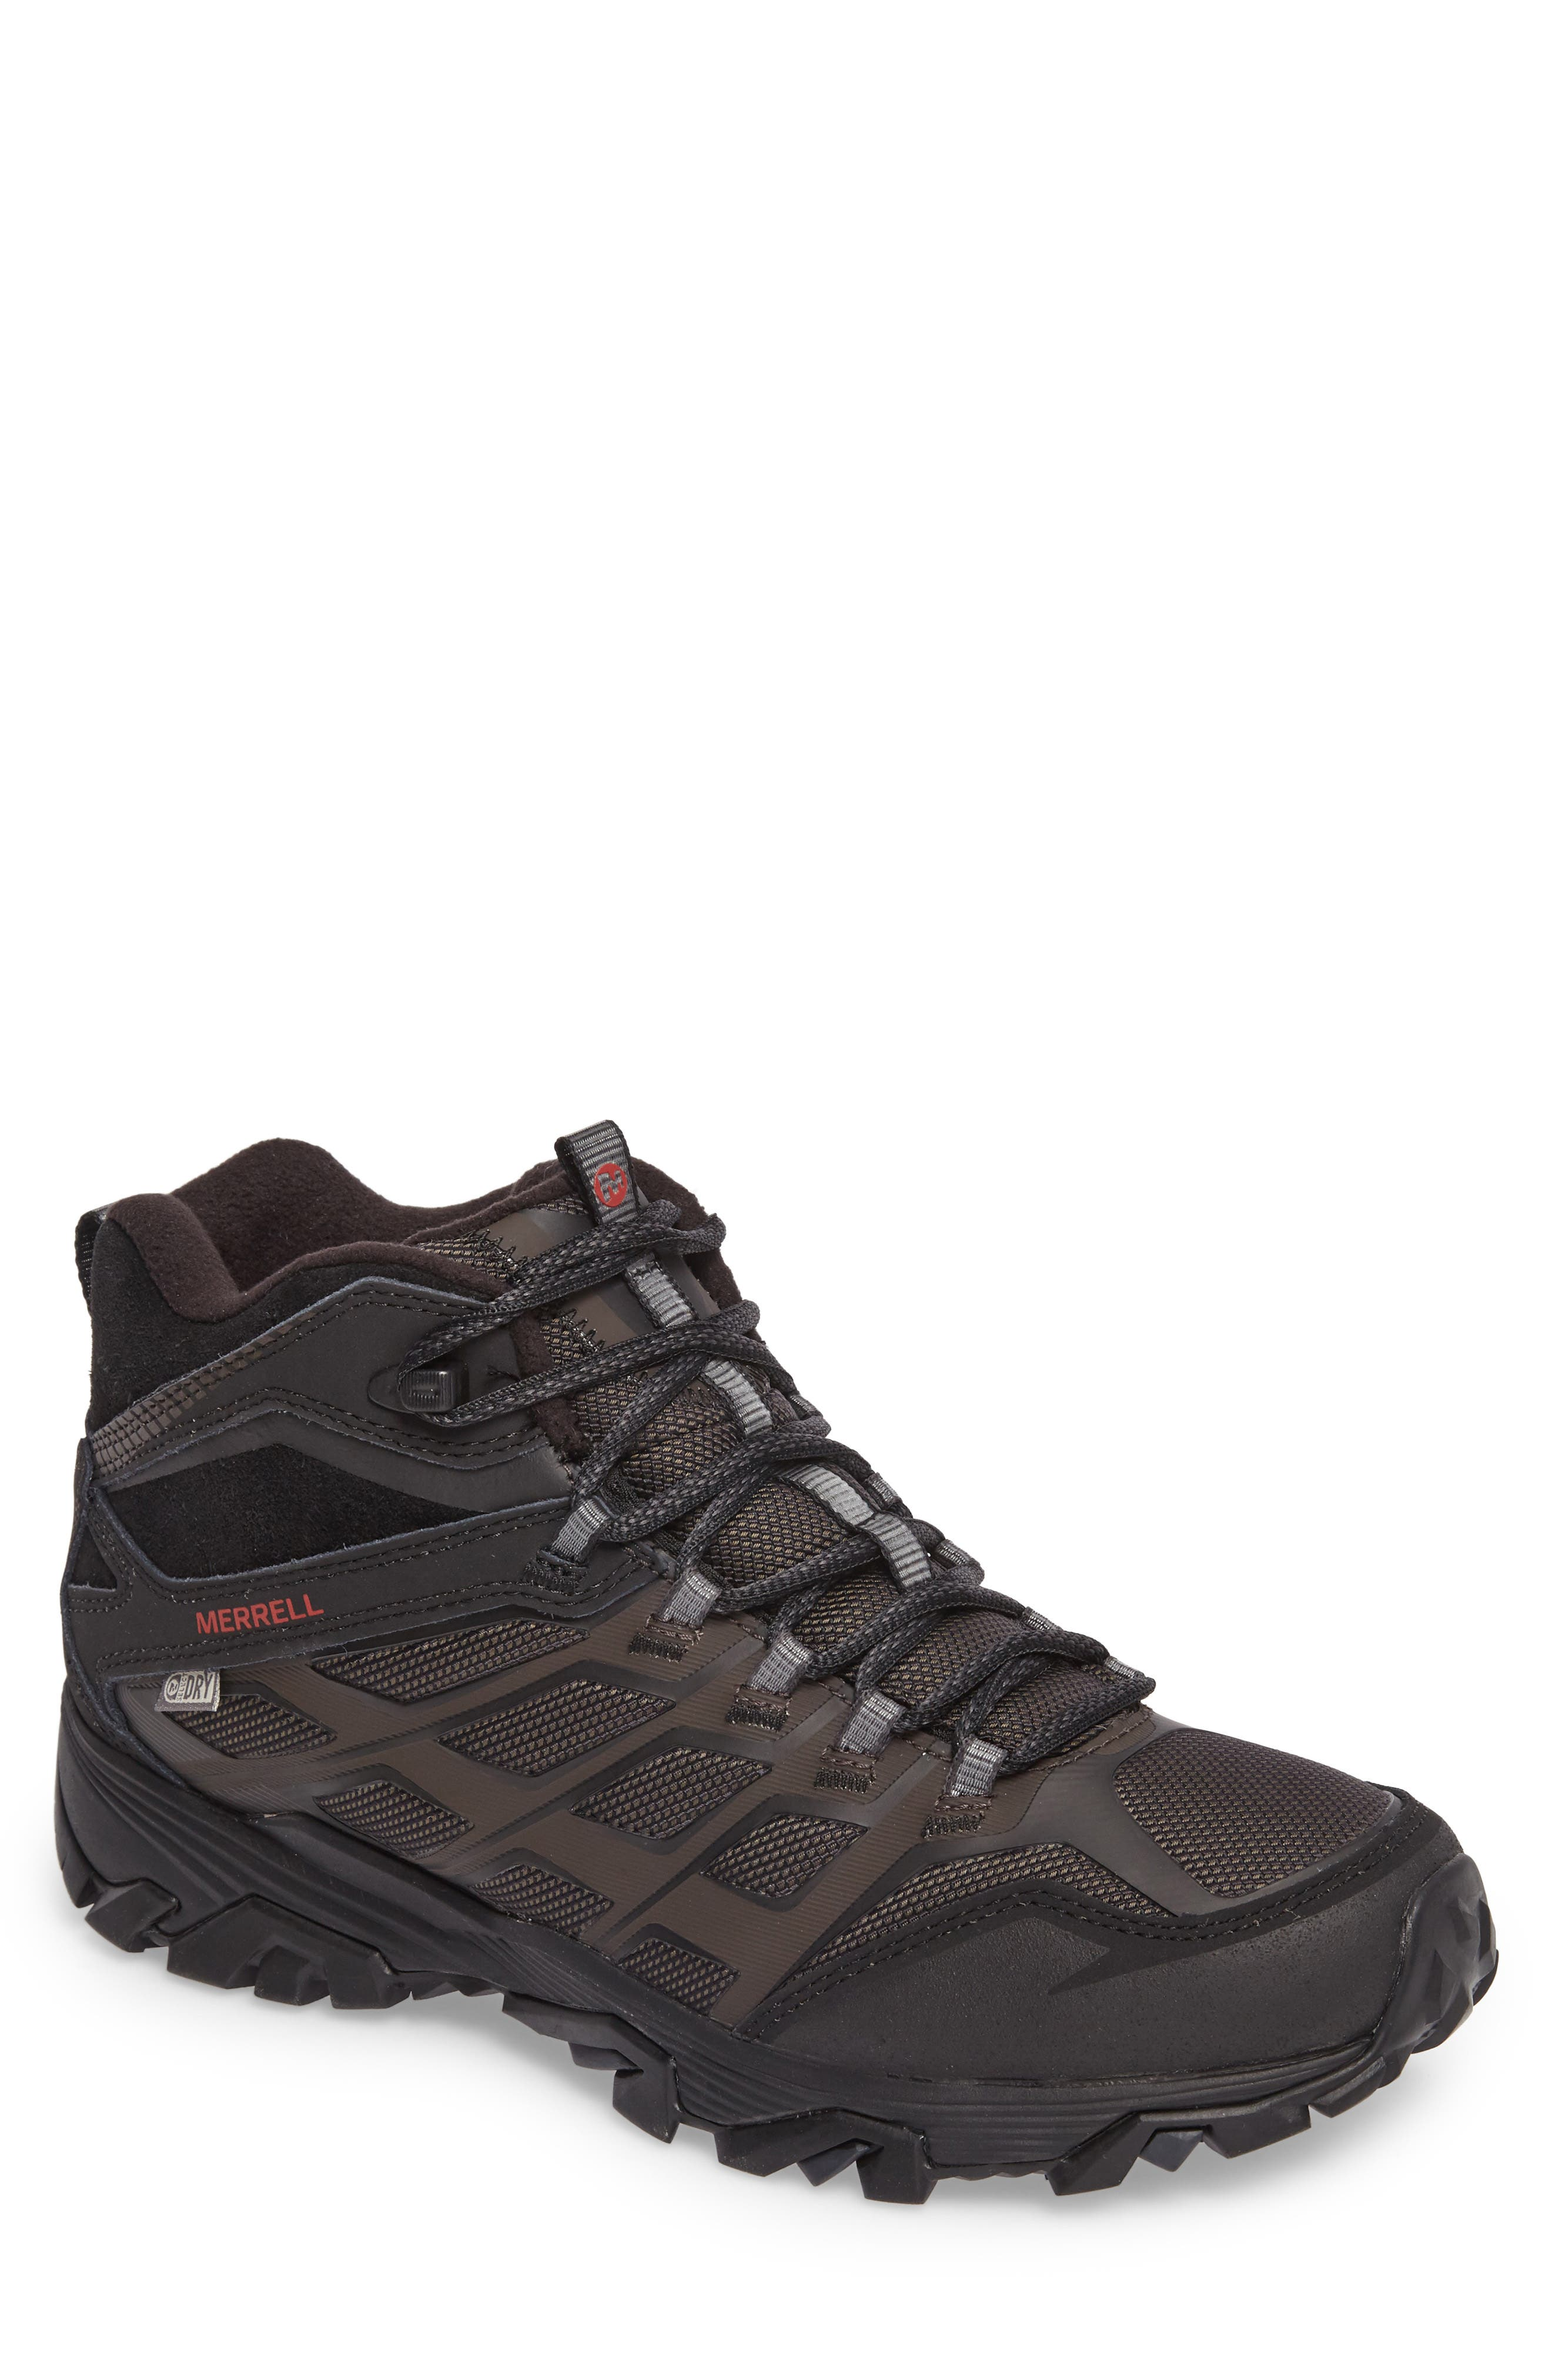 Moab FST Ice Thermo Waterproof Hiking Shoe,                             Main thumbnail 1, color,                             Black Fabric